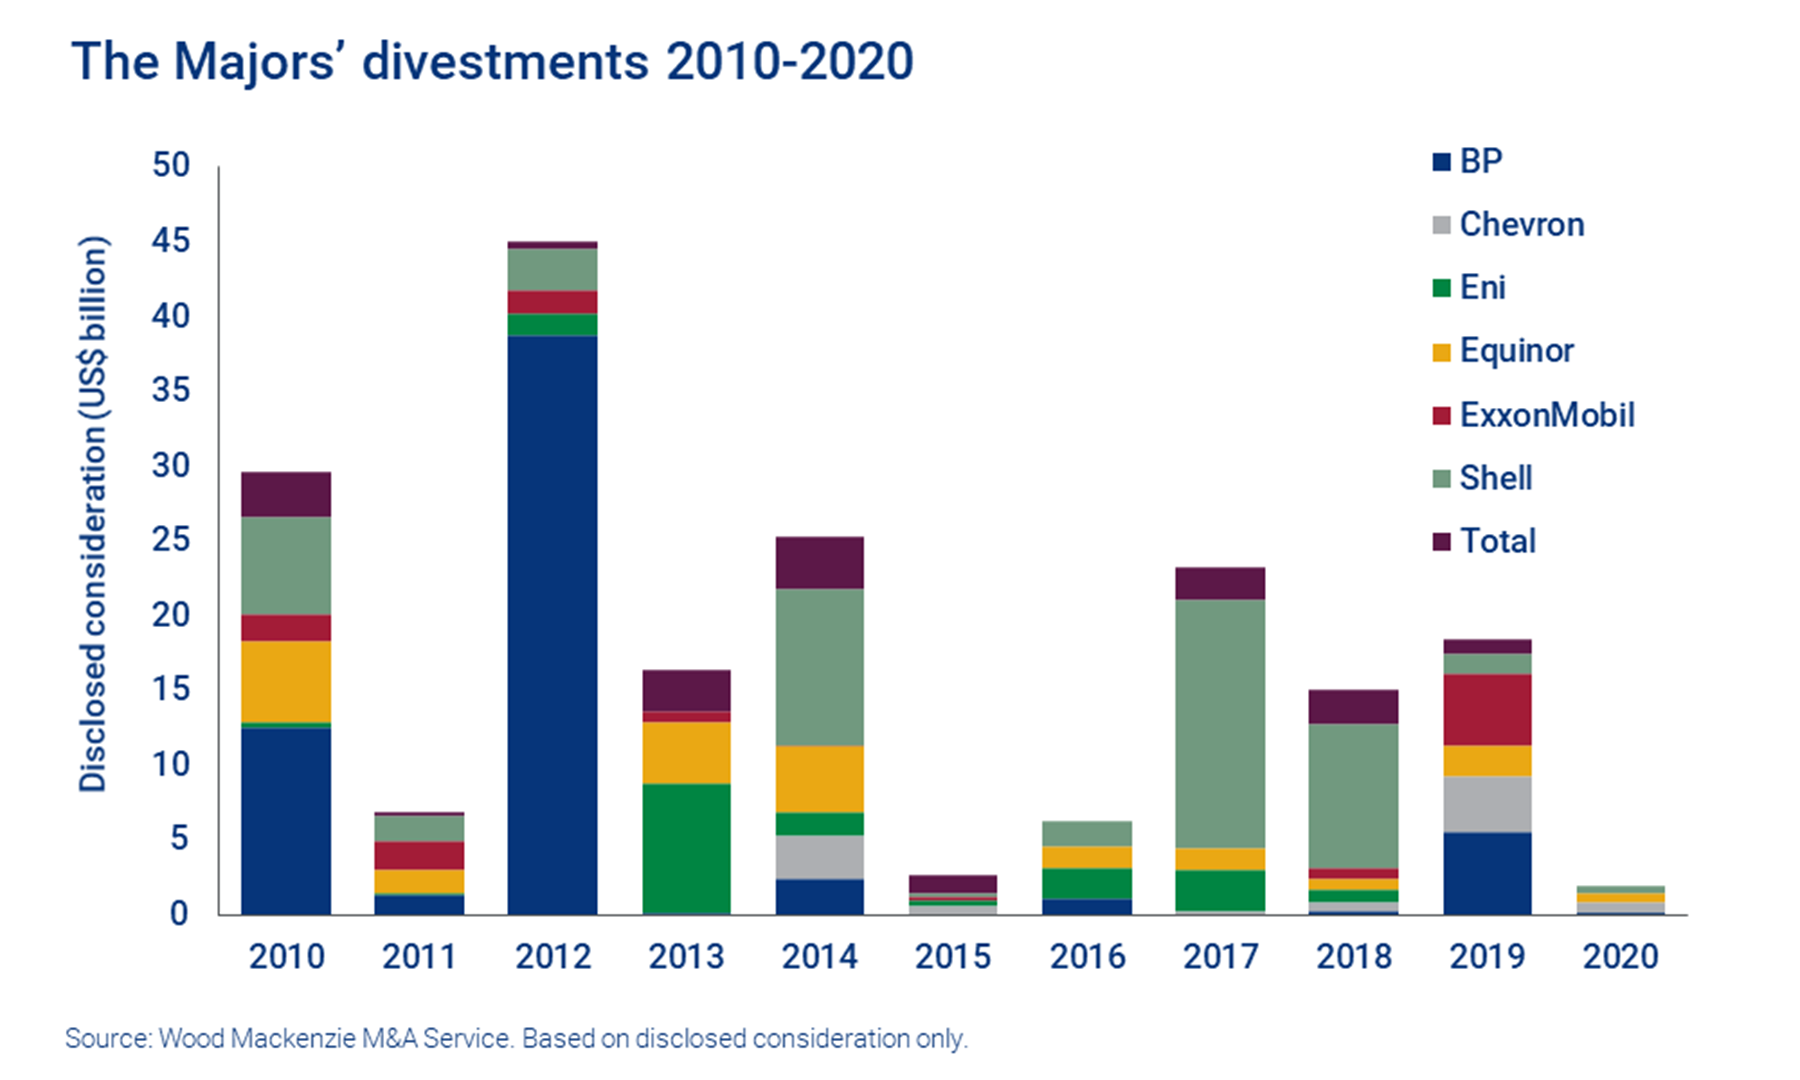 The Majors' divestments 2010-2020